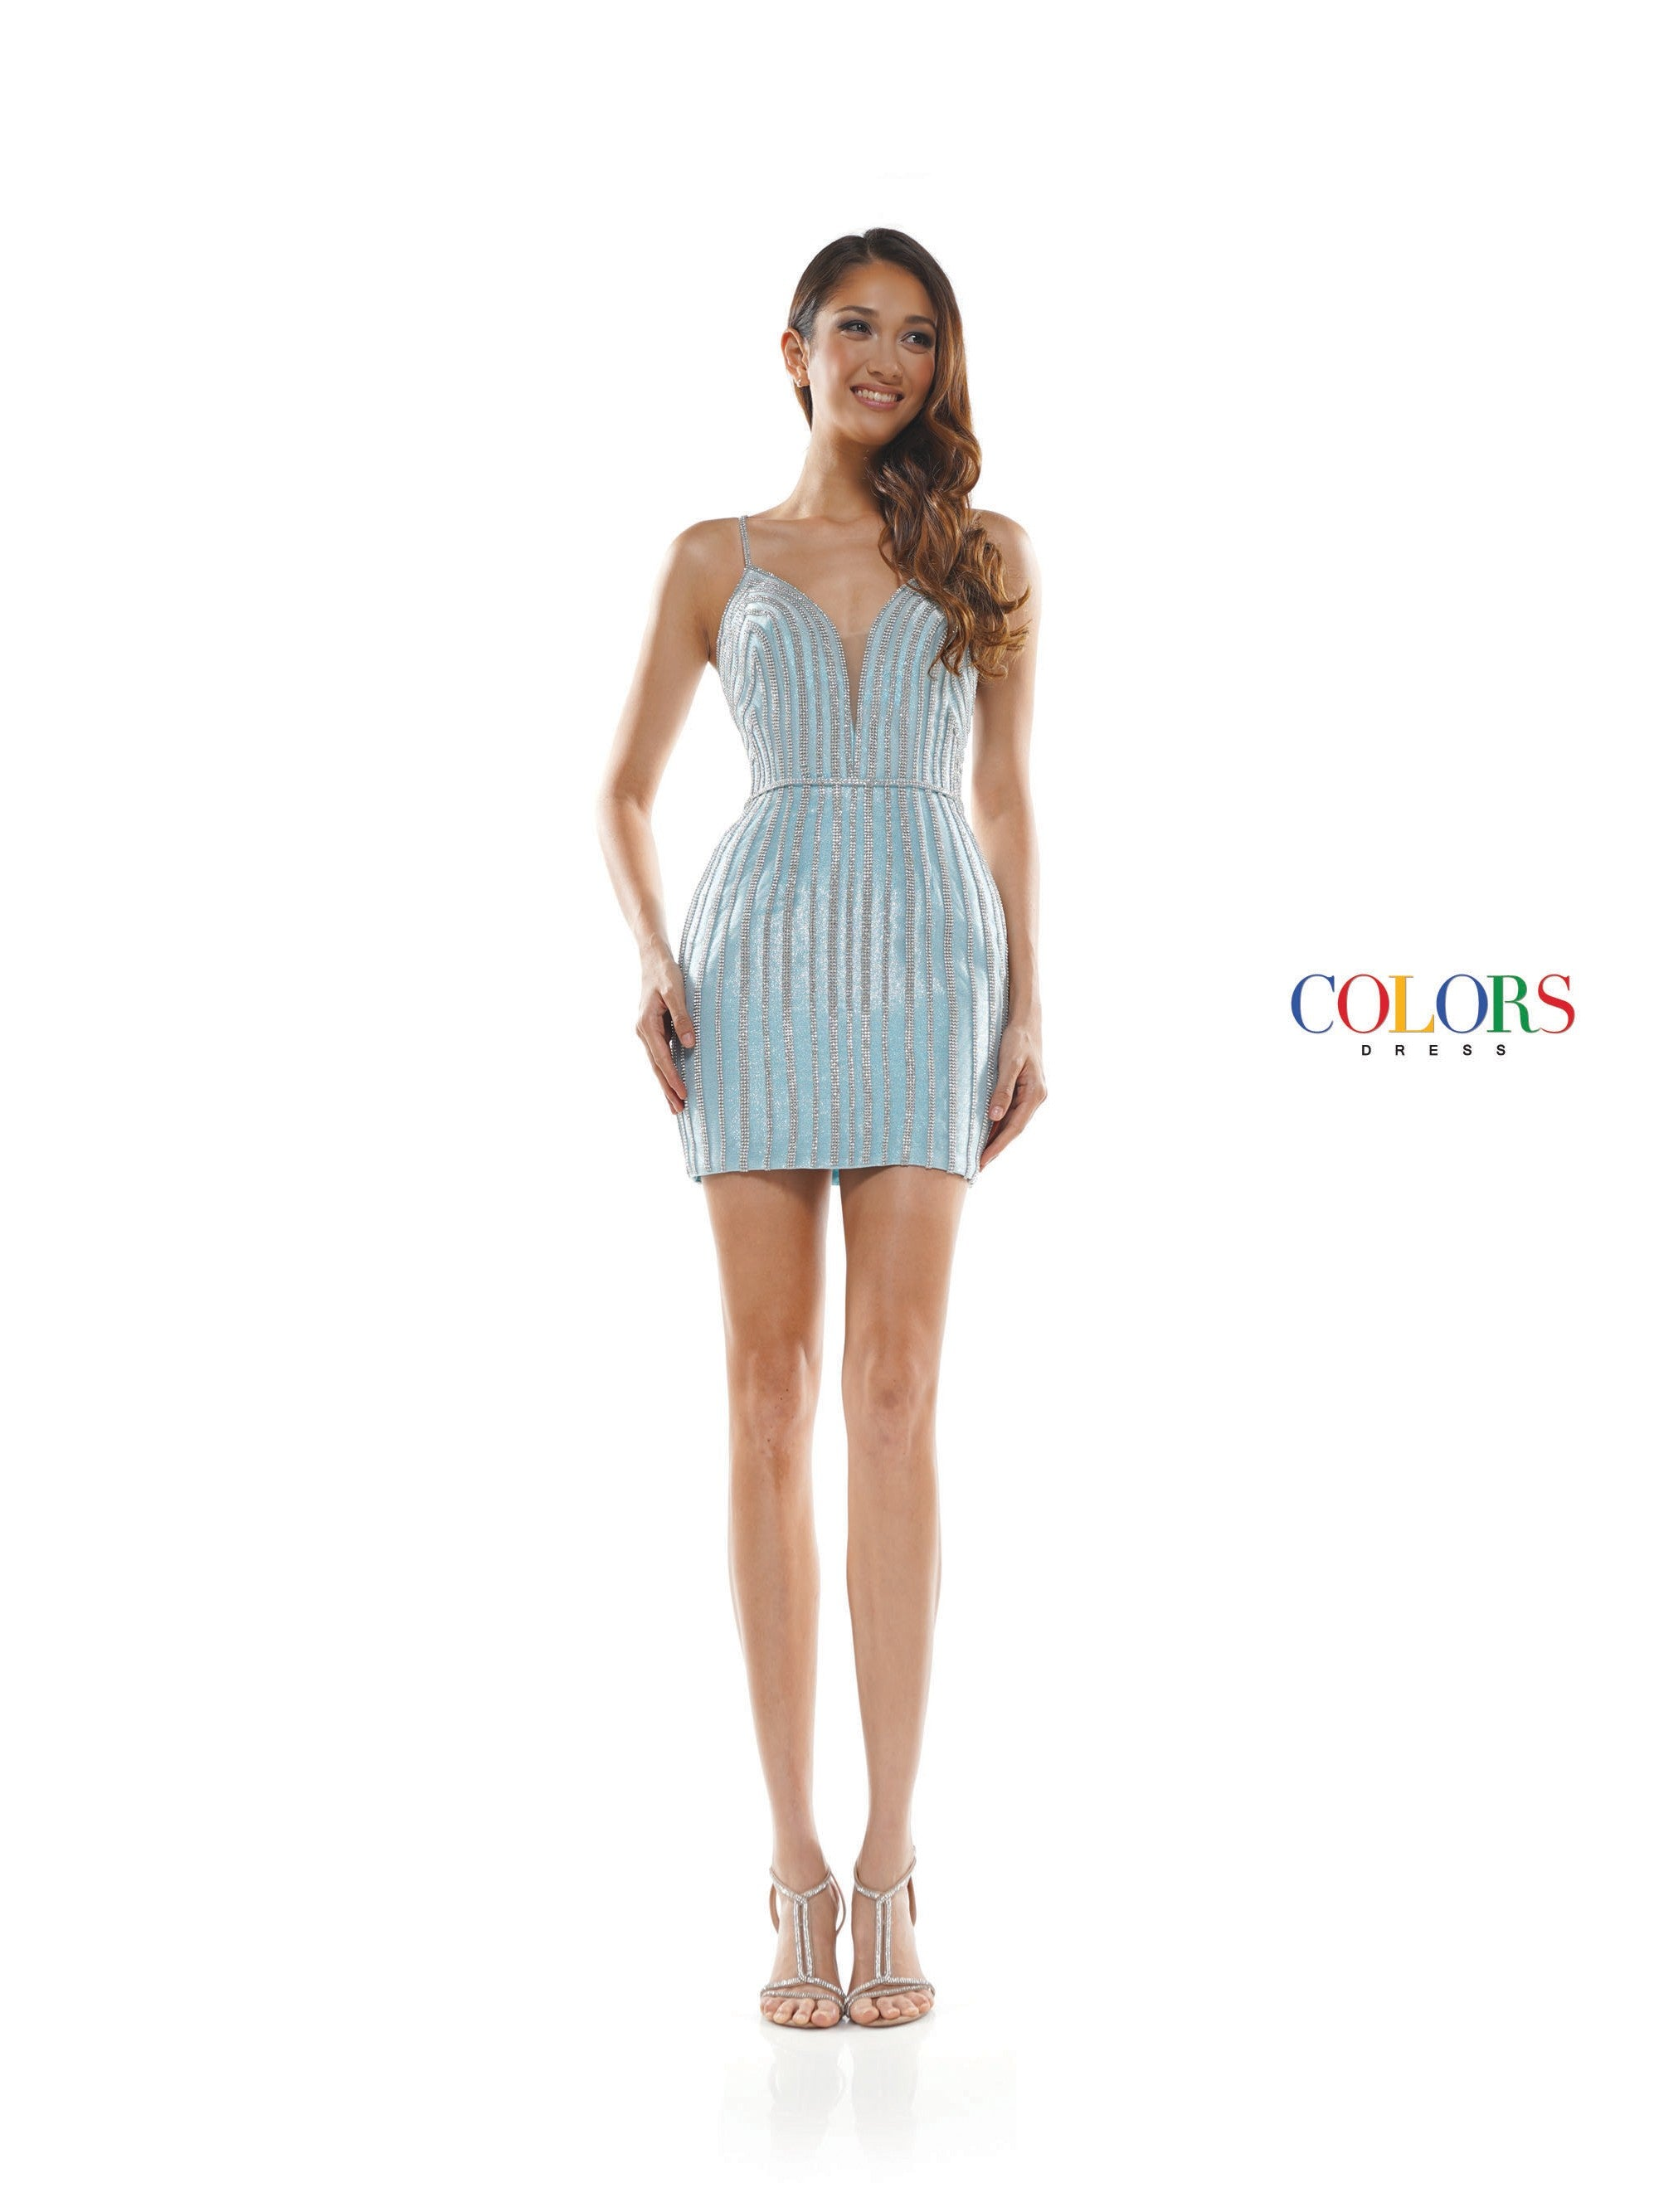 2369 - plunged sweet heart neckline glitter knit fitted short dress with stone tape deco & belt